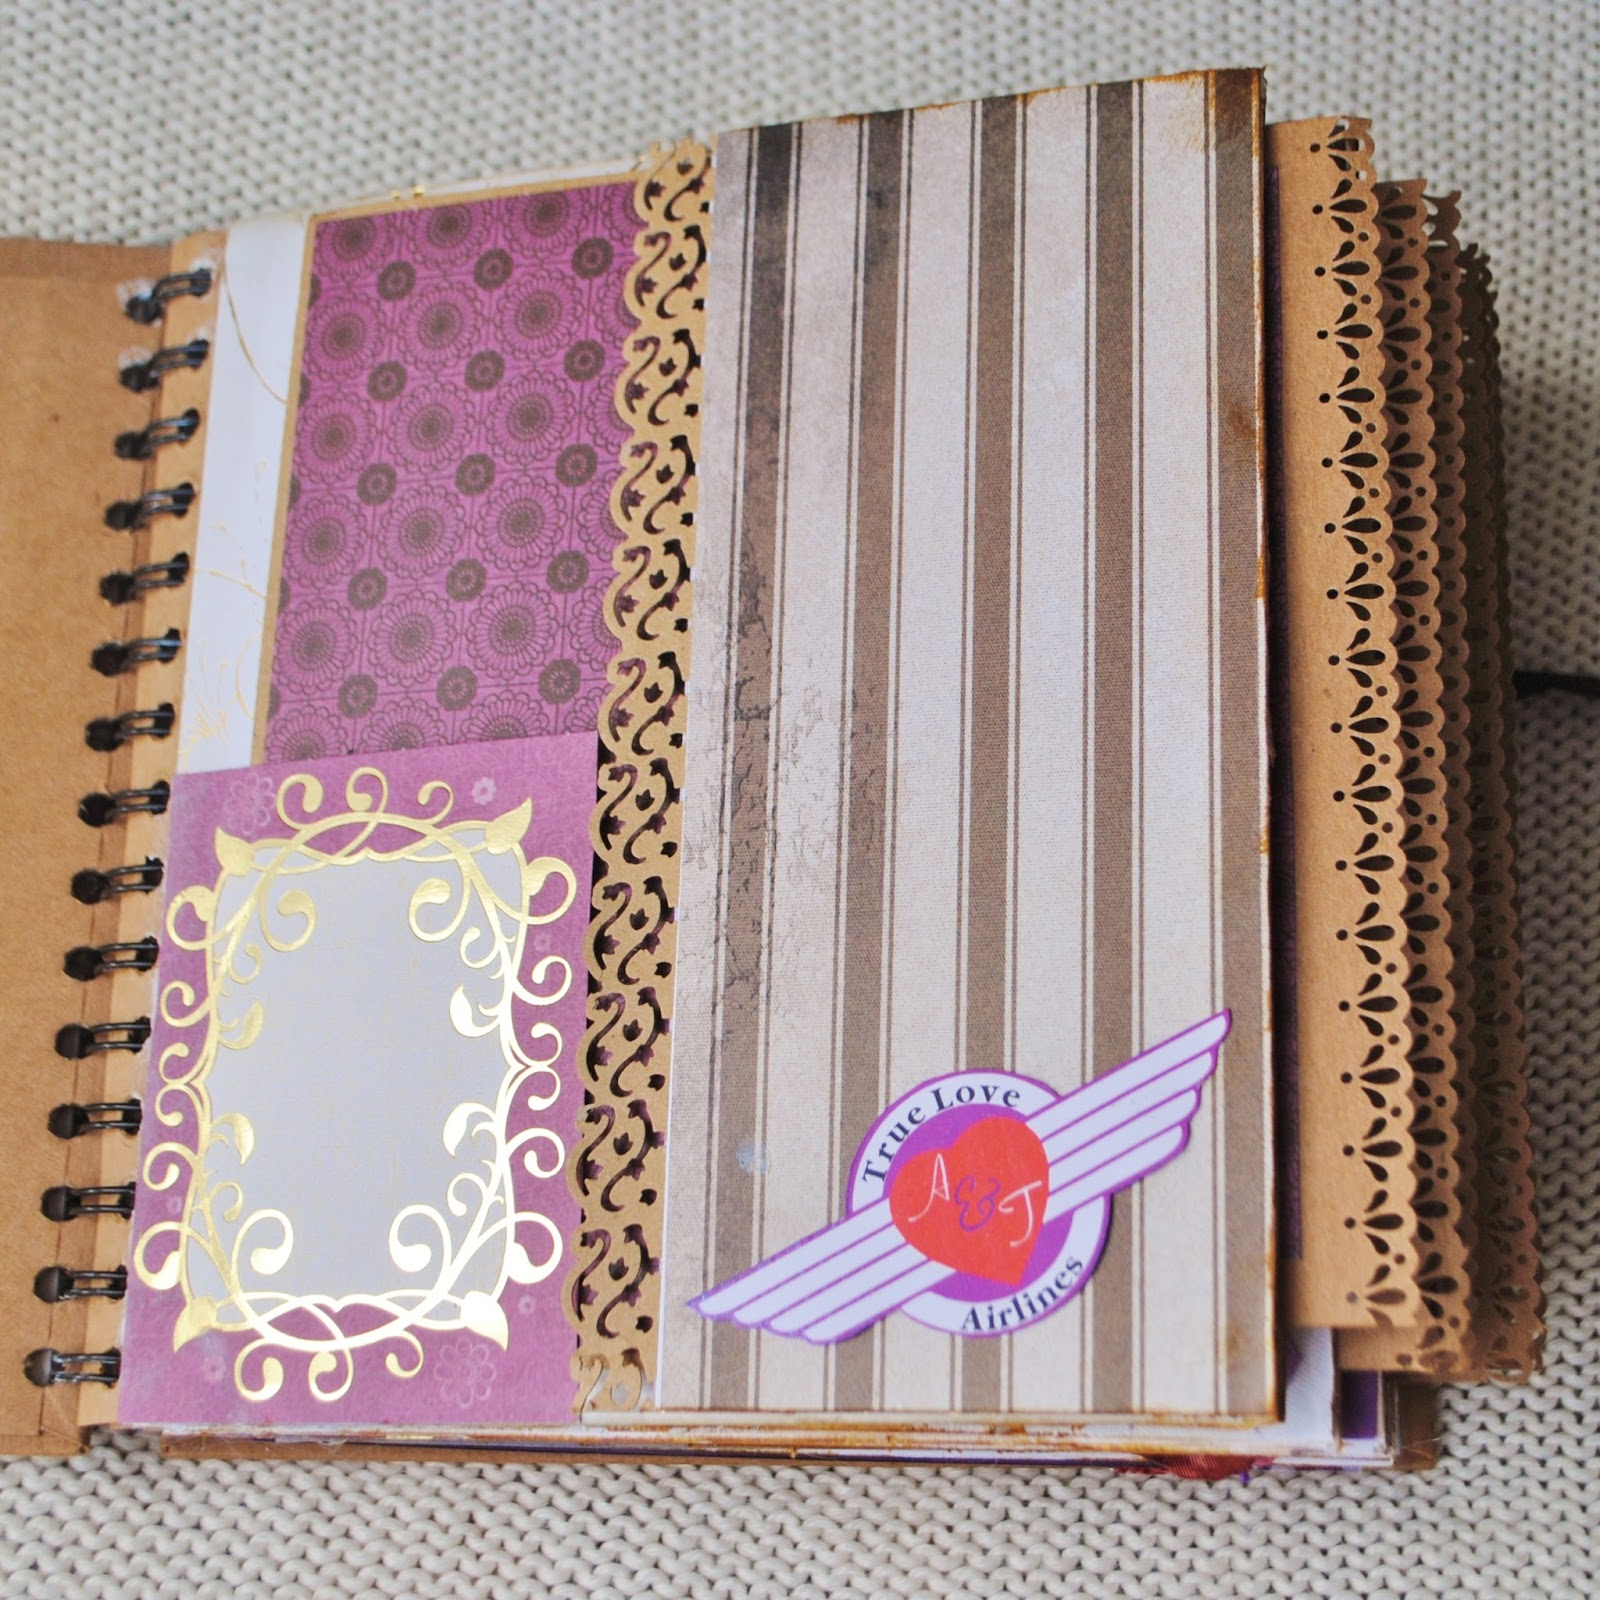 How to scrapbook wedding album - And Here Is The Last Photo You Can See A Sample How The Scrapbook Pages Look Like Inside This Particular One Doesn T Have Any 3d Embellishments